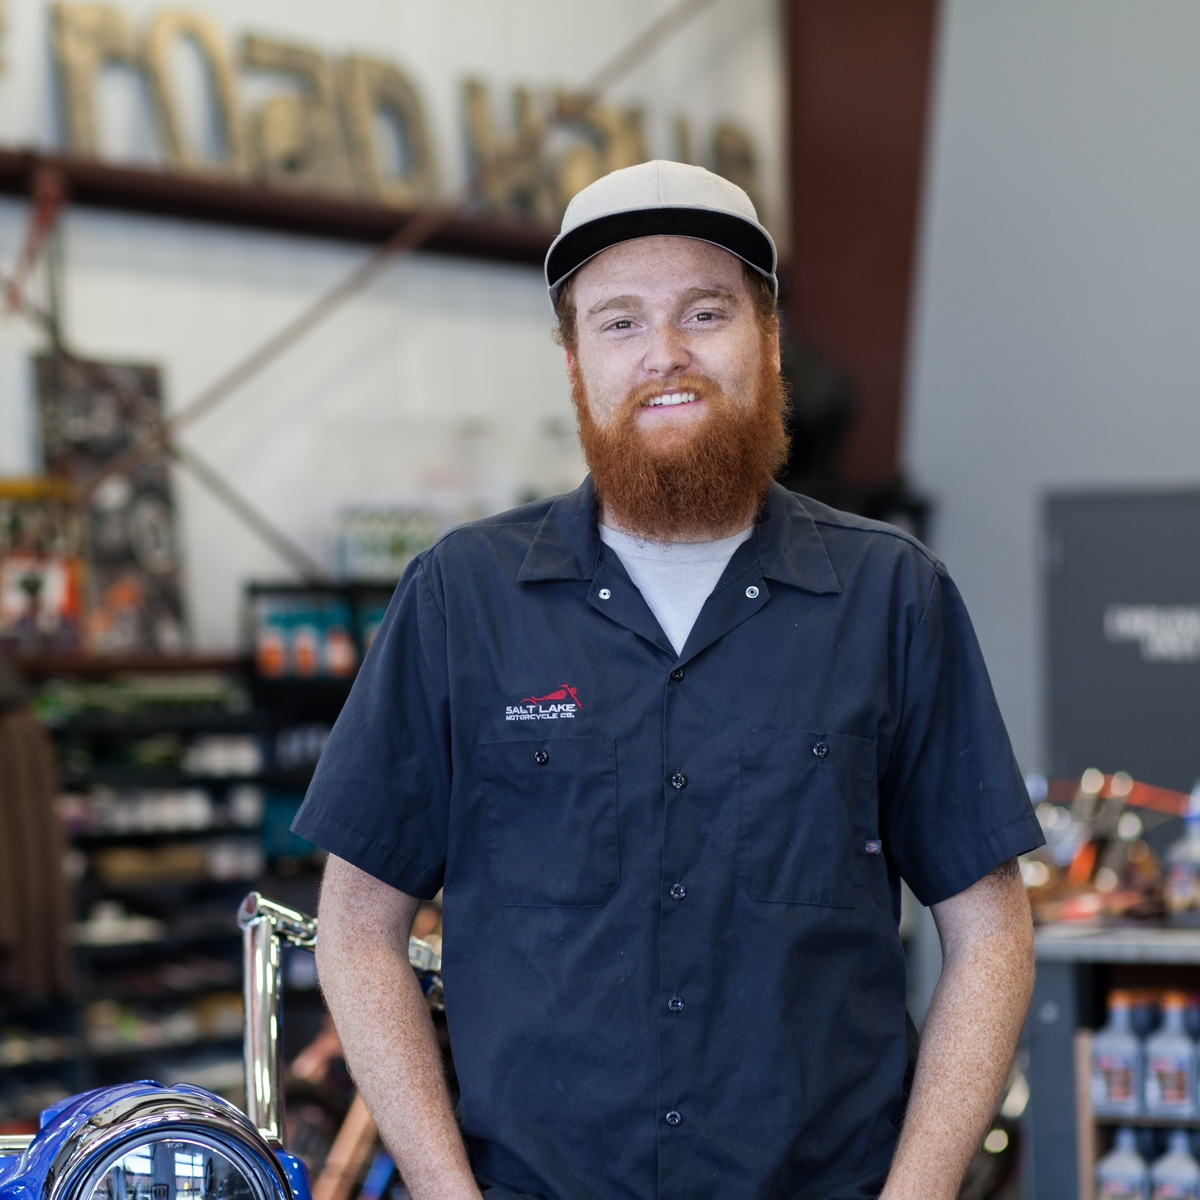 Tristian Smith - Tristian Smith works on the Salt Lake Moto team as a Service Technician. When Tristian finished school, he was looking for a shop that does things the right way and the internet led him to our shop.Tristian loves the variety of working on and test riding all types of bikes at the shop. Tristian—a Salt Lake City native—says his favorite part of working at Salt Lake Moto is working with Tom and Chris.Tristian's motorcycles: Sportster 1200 and a KTM for the dirt